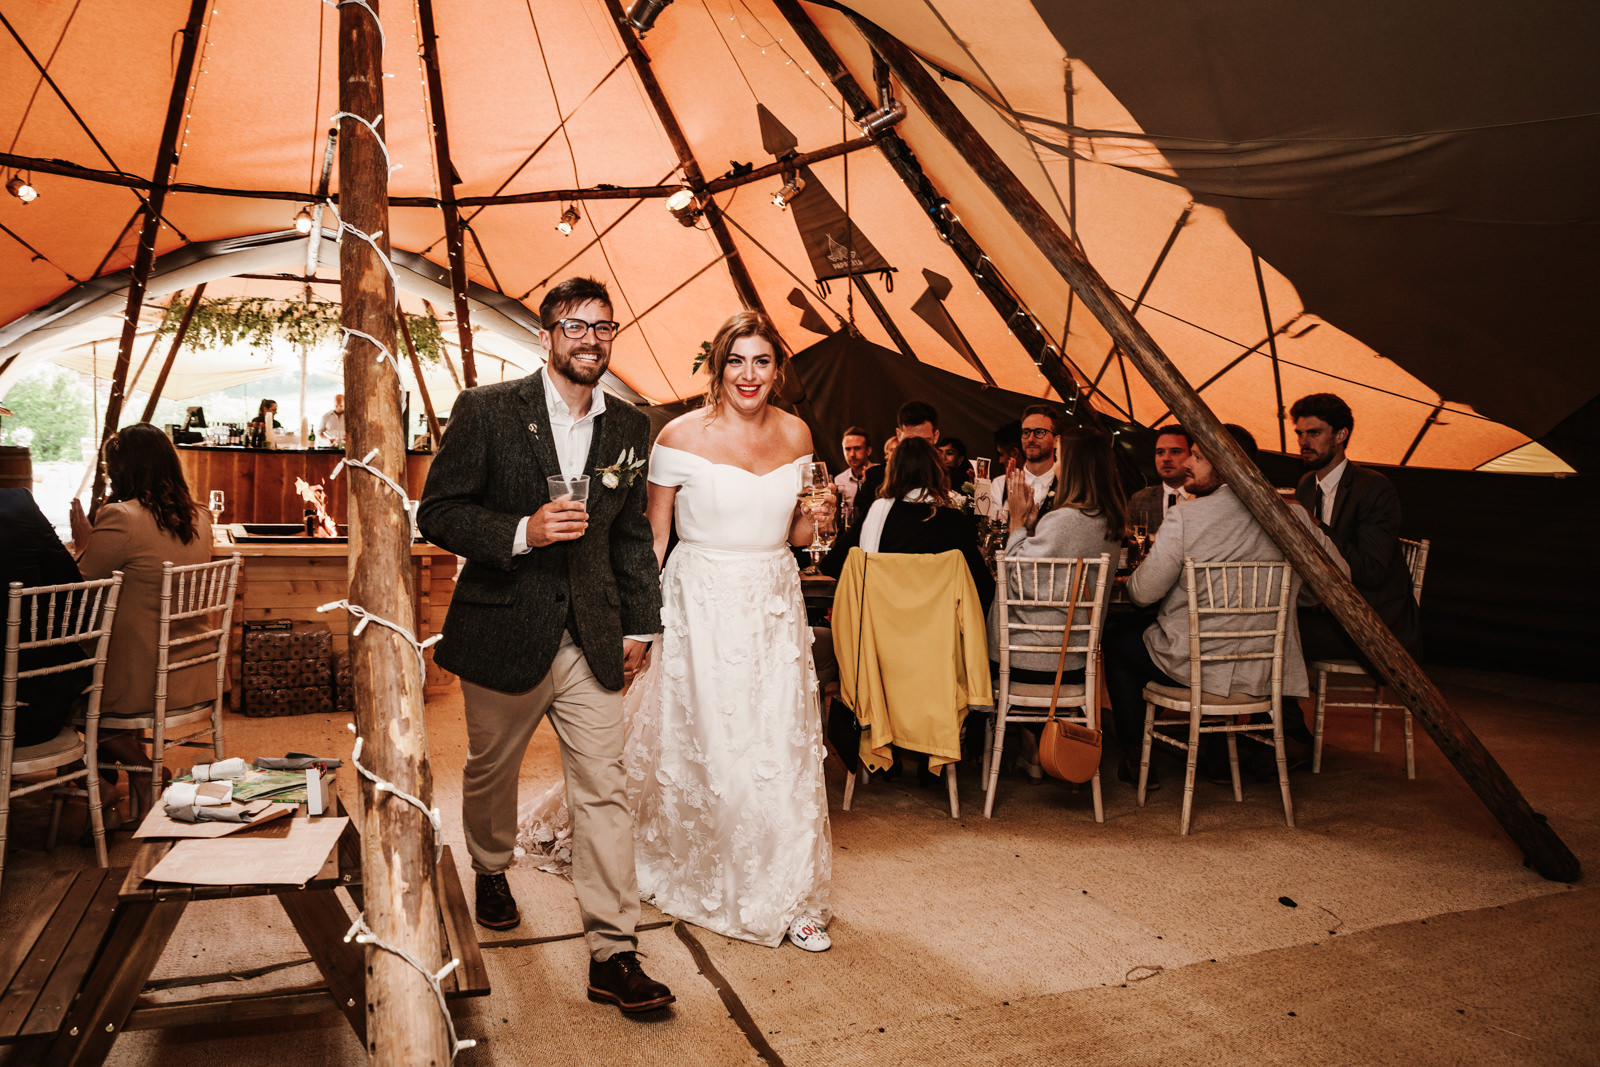 Bride and groom enter the tipi